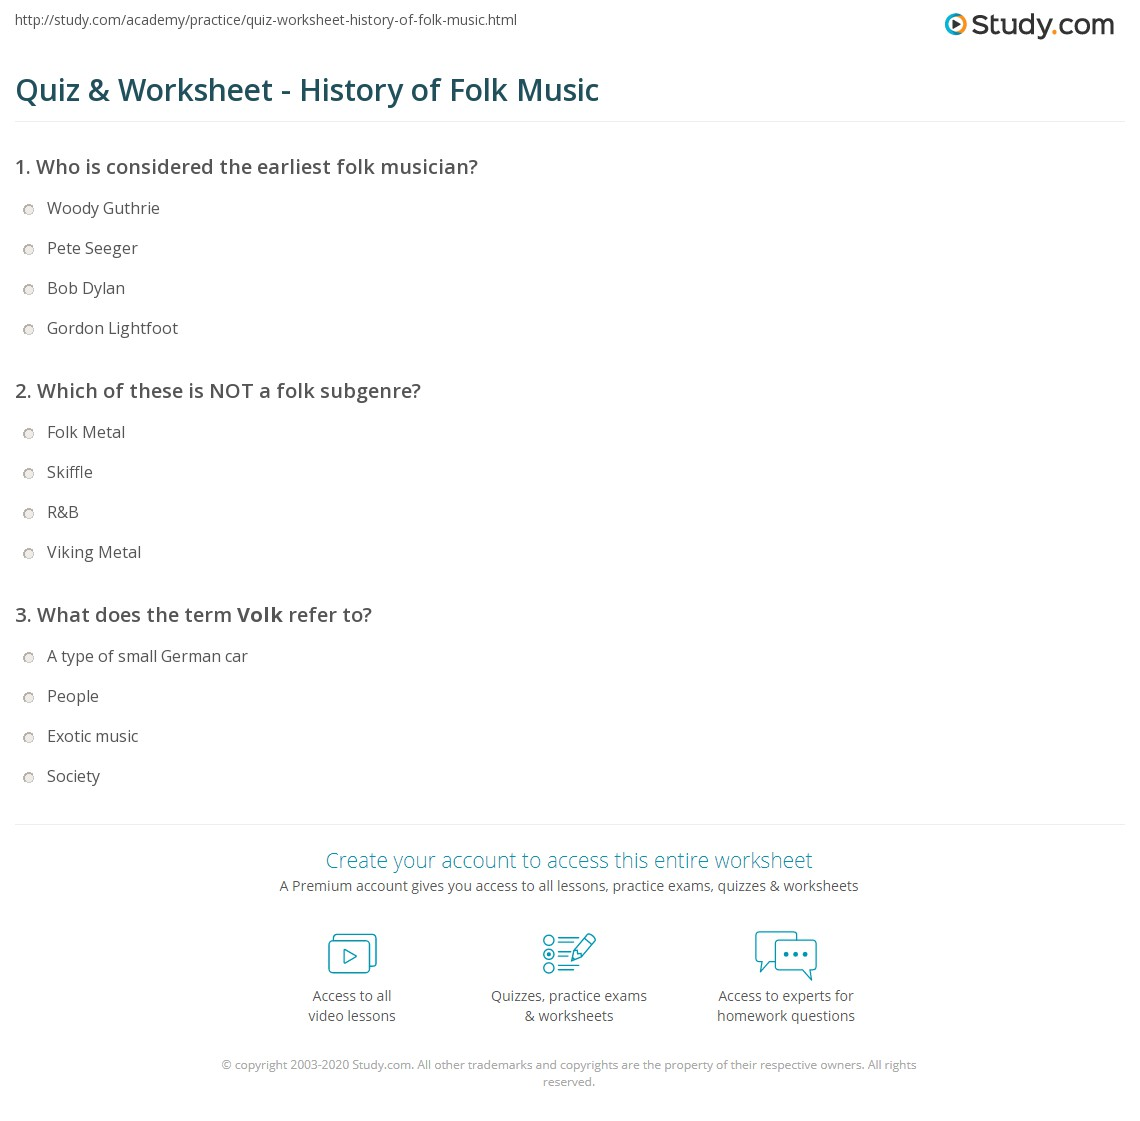 Quiz & Worksheet - History of Folk Music | Study.com